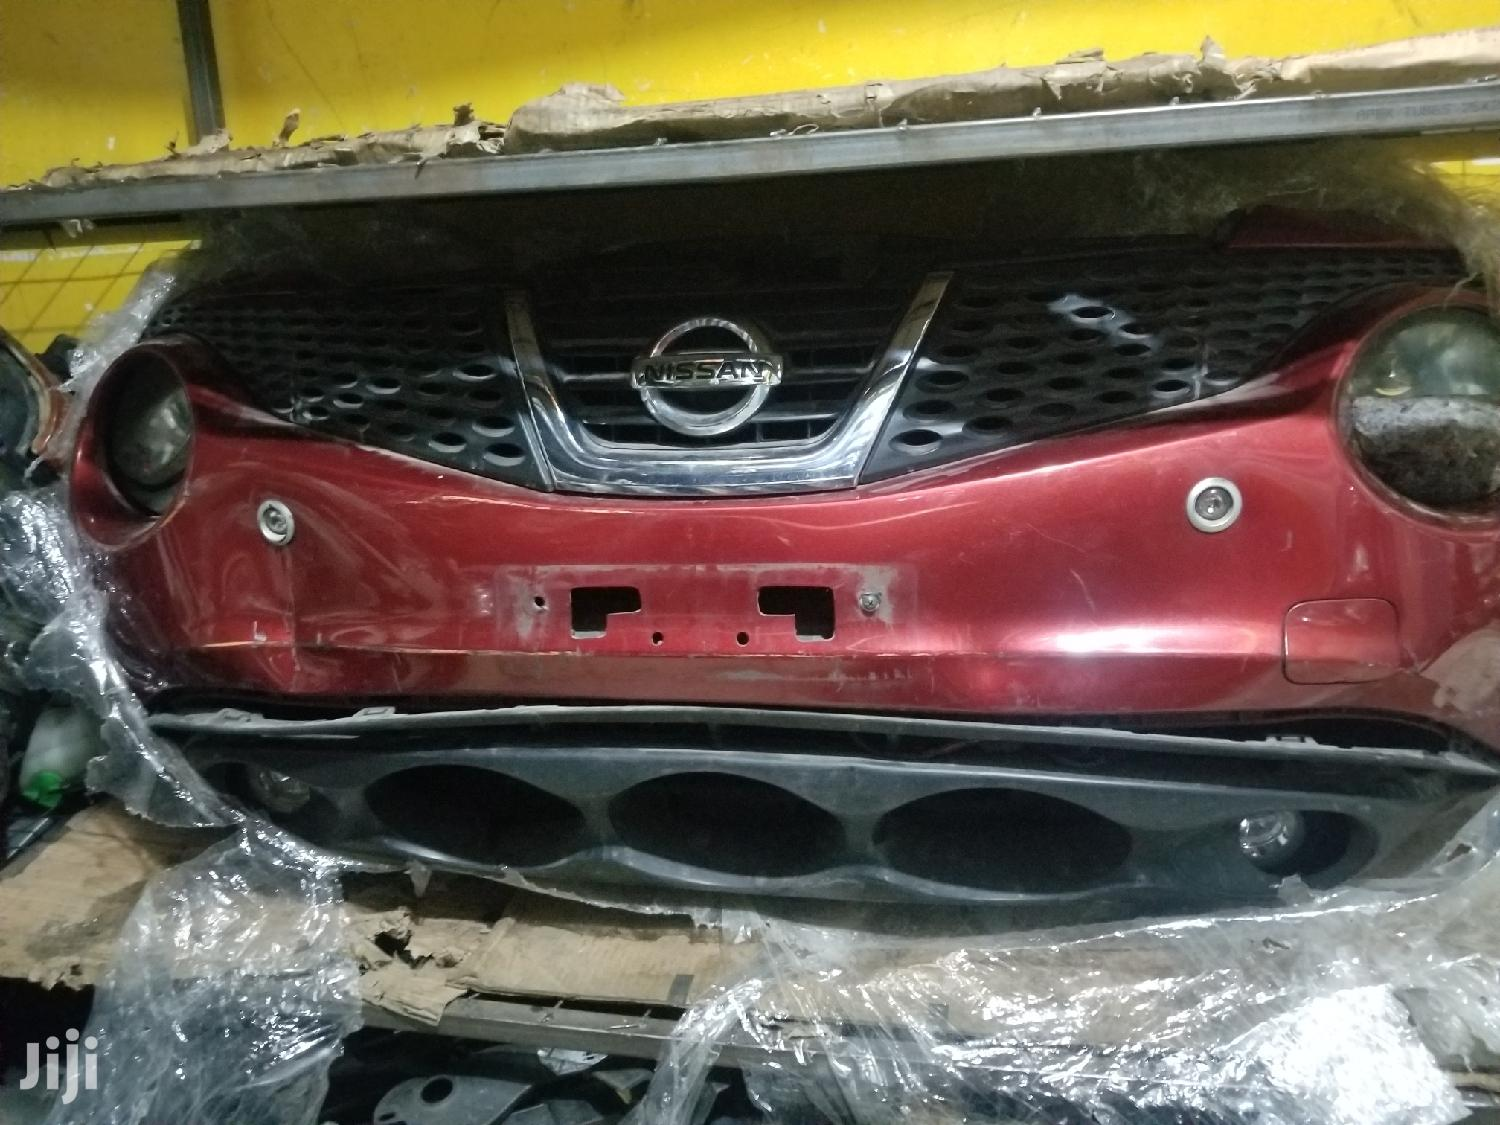 New Stock Taking On Nissan Juke 2010 Nosecut Auto Car Body Parts | Vehicle Parts & Accessories for sale in Nairobi Central, Nairobi, Kenya